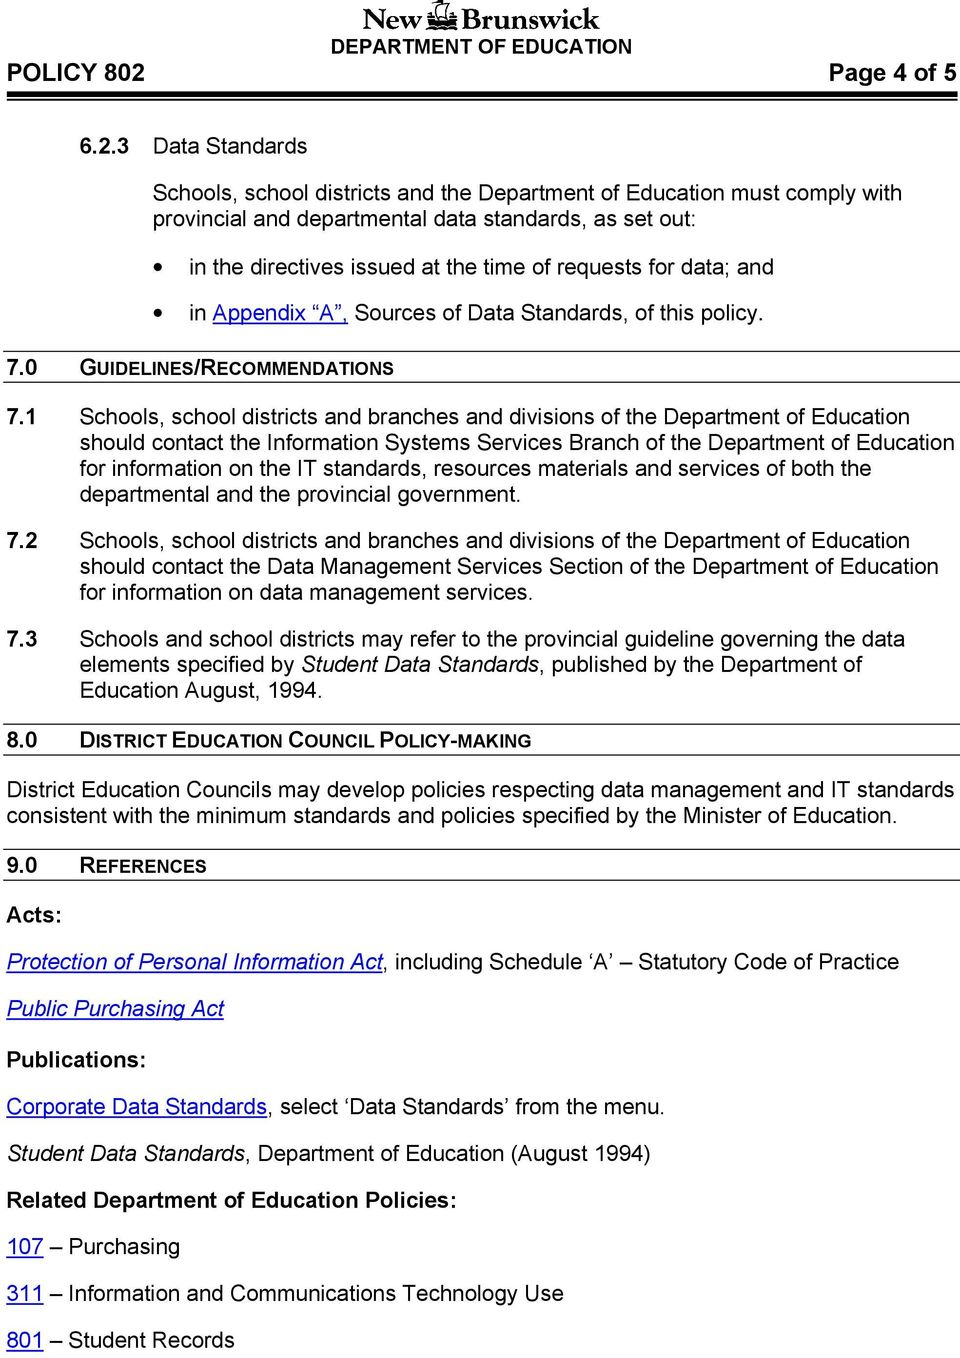 3 Data Standards Schools, school districts and the Department of Education must comply with provincial and departmental data standards, as set out: in the directives issued at the time of requests